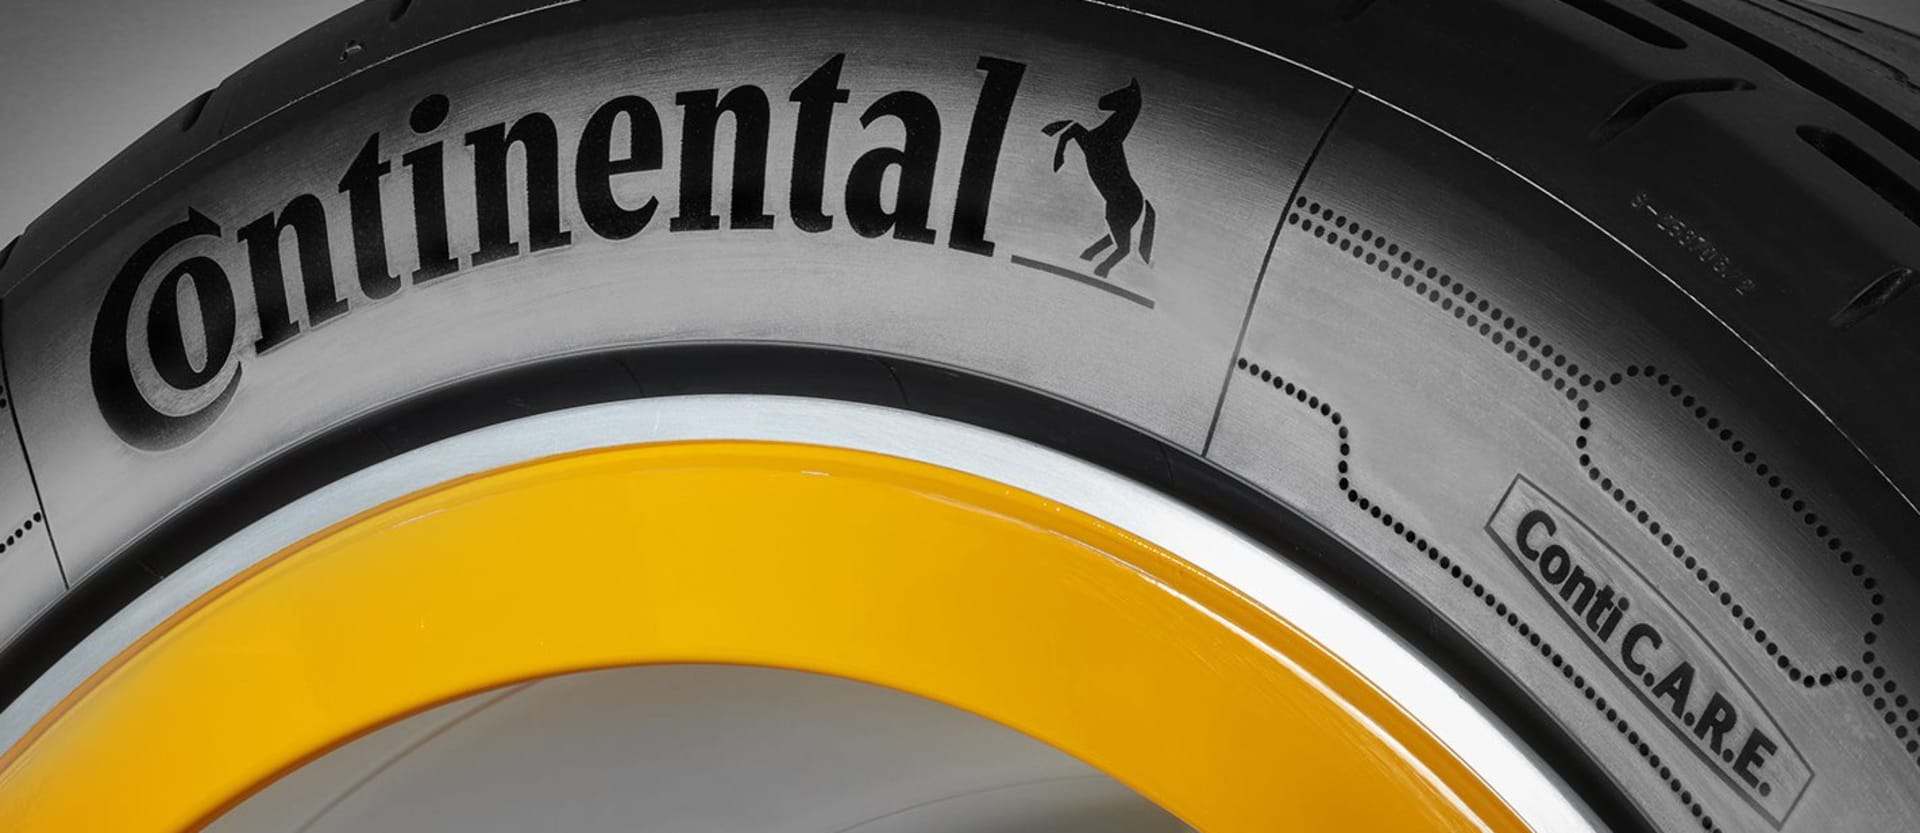 Continental self-inflating tyre